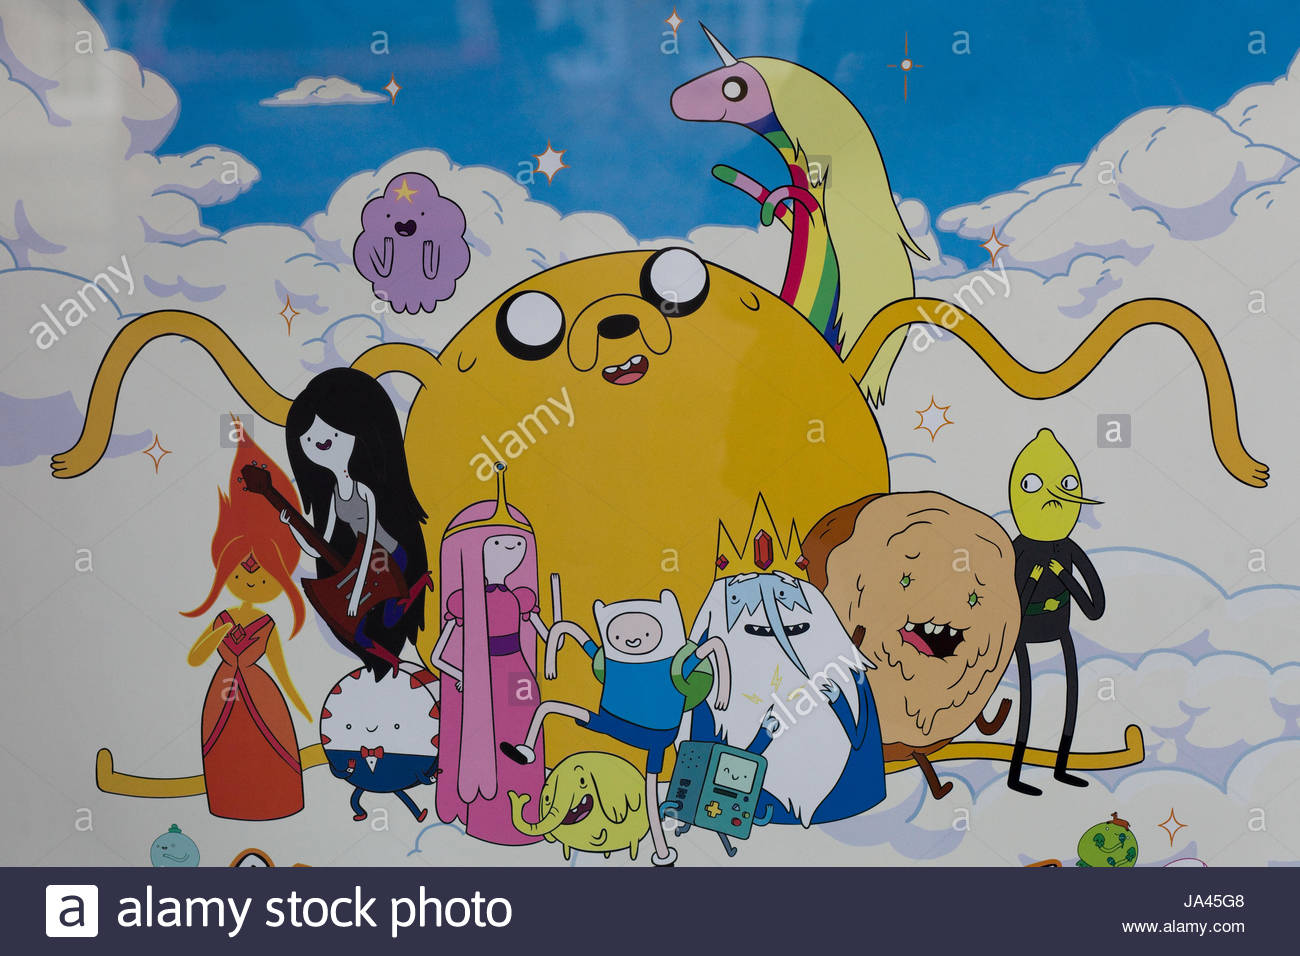 Shop window displaying Adventure Time poster - Stock Image